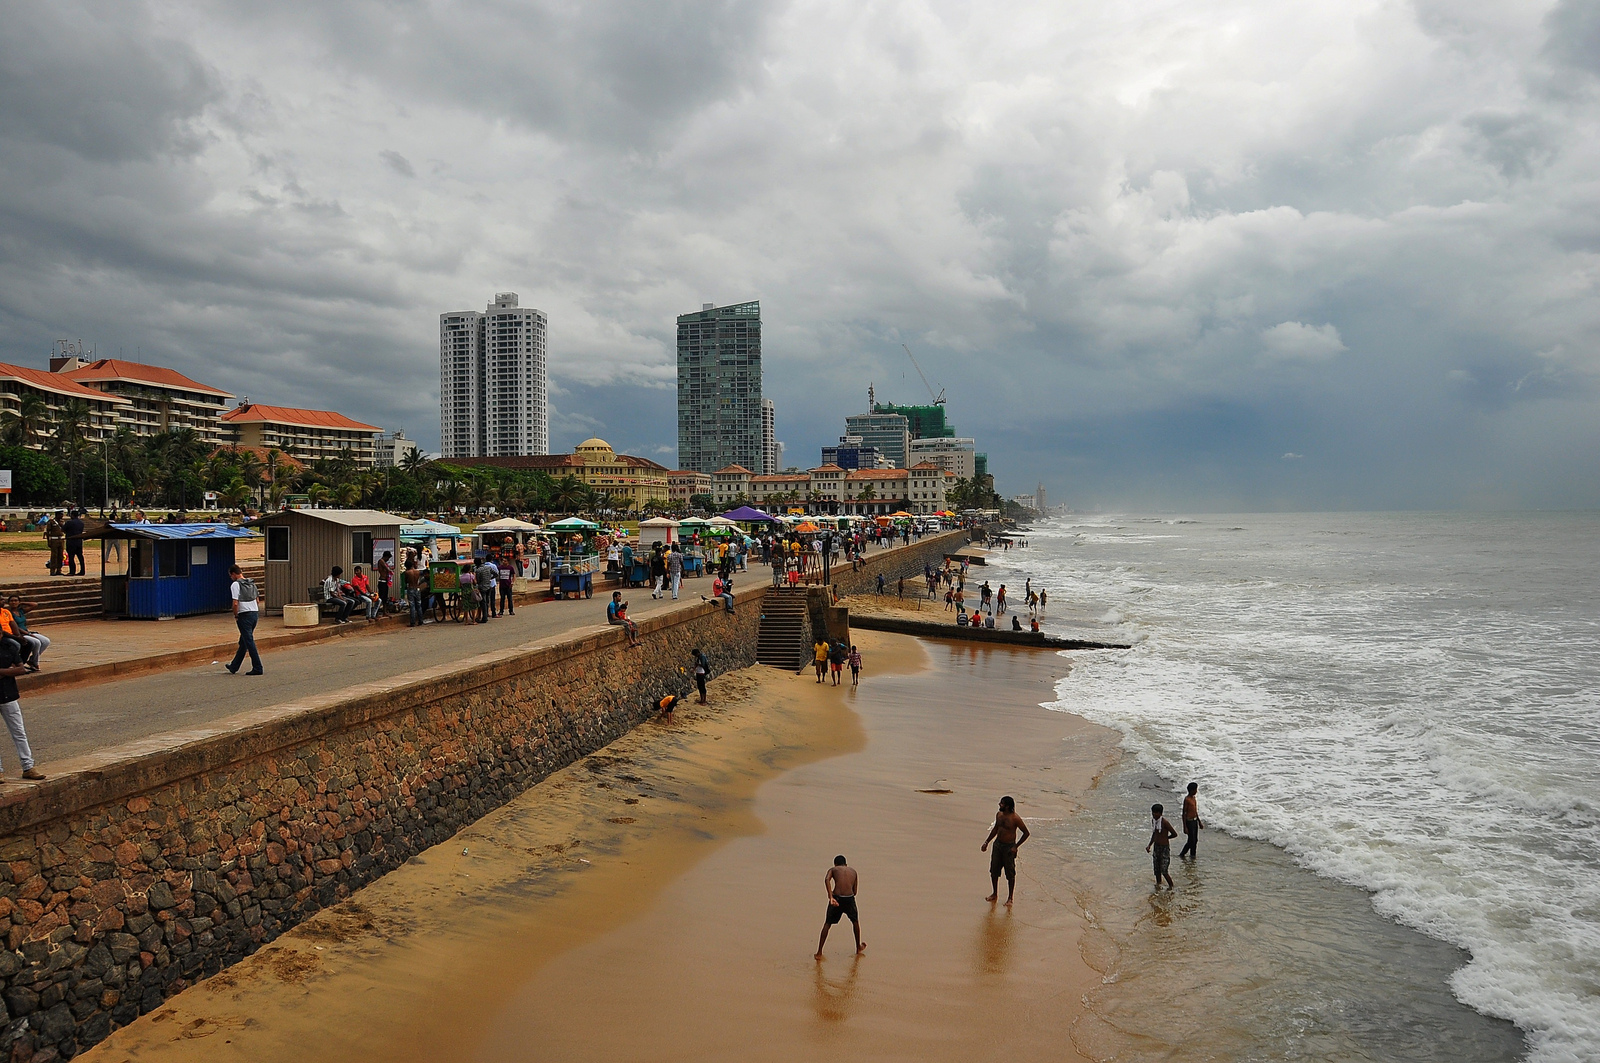 Galle Face Green Colombo, Navy official confesses to have sexually abused woman at Galle ...